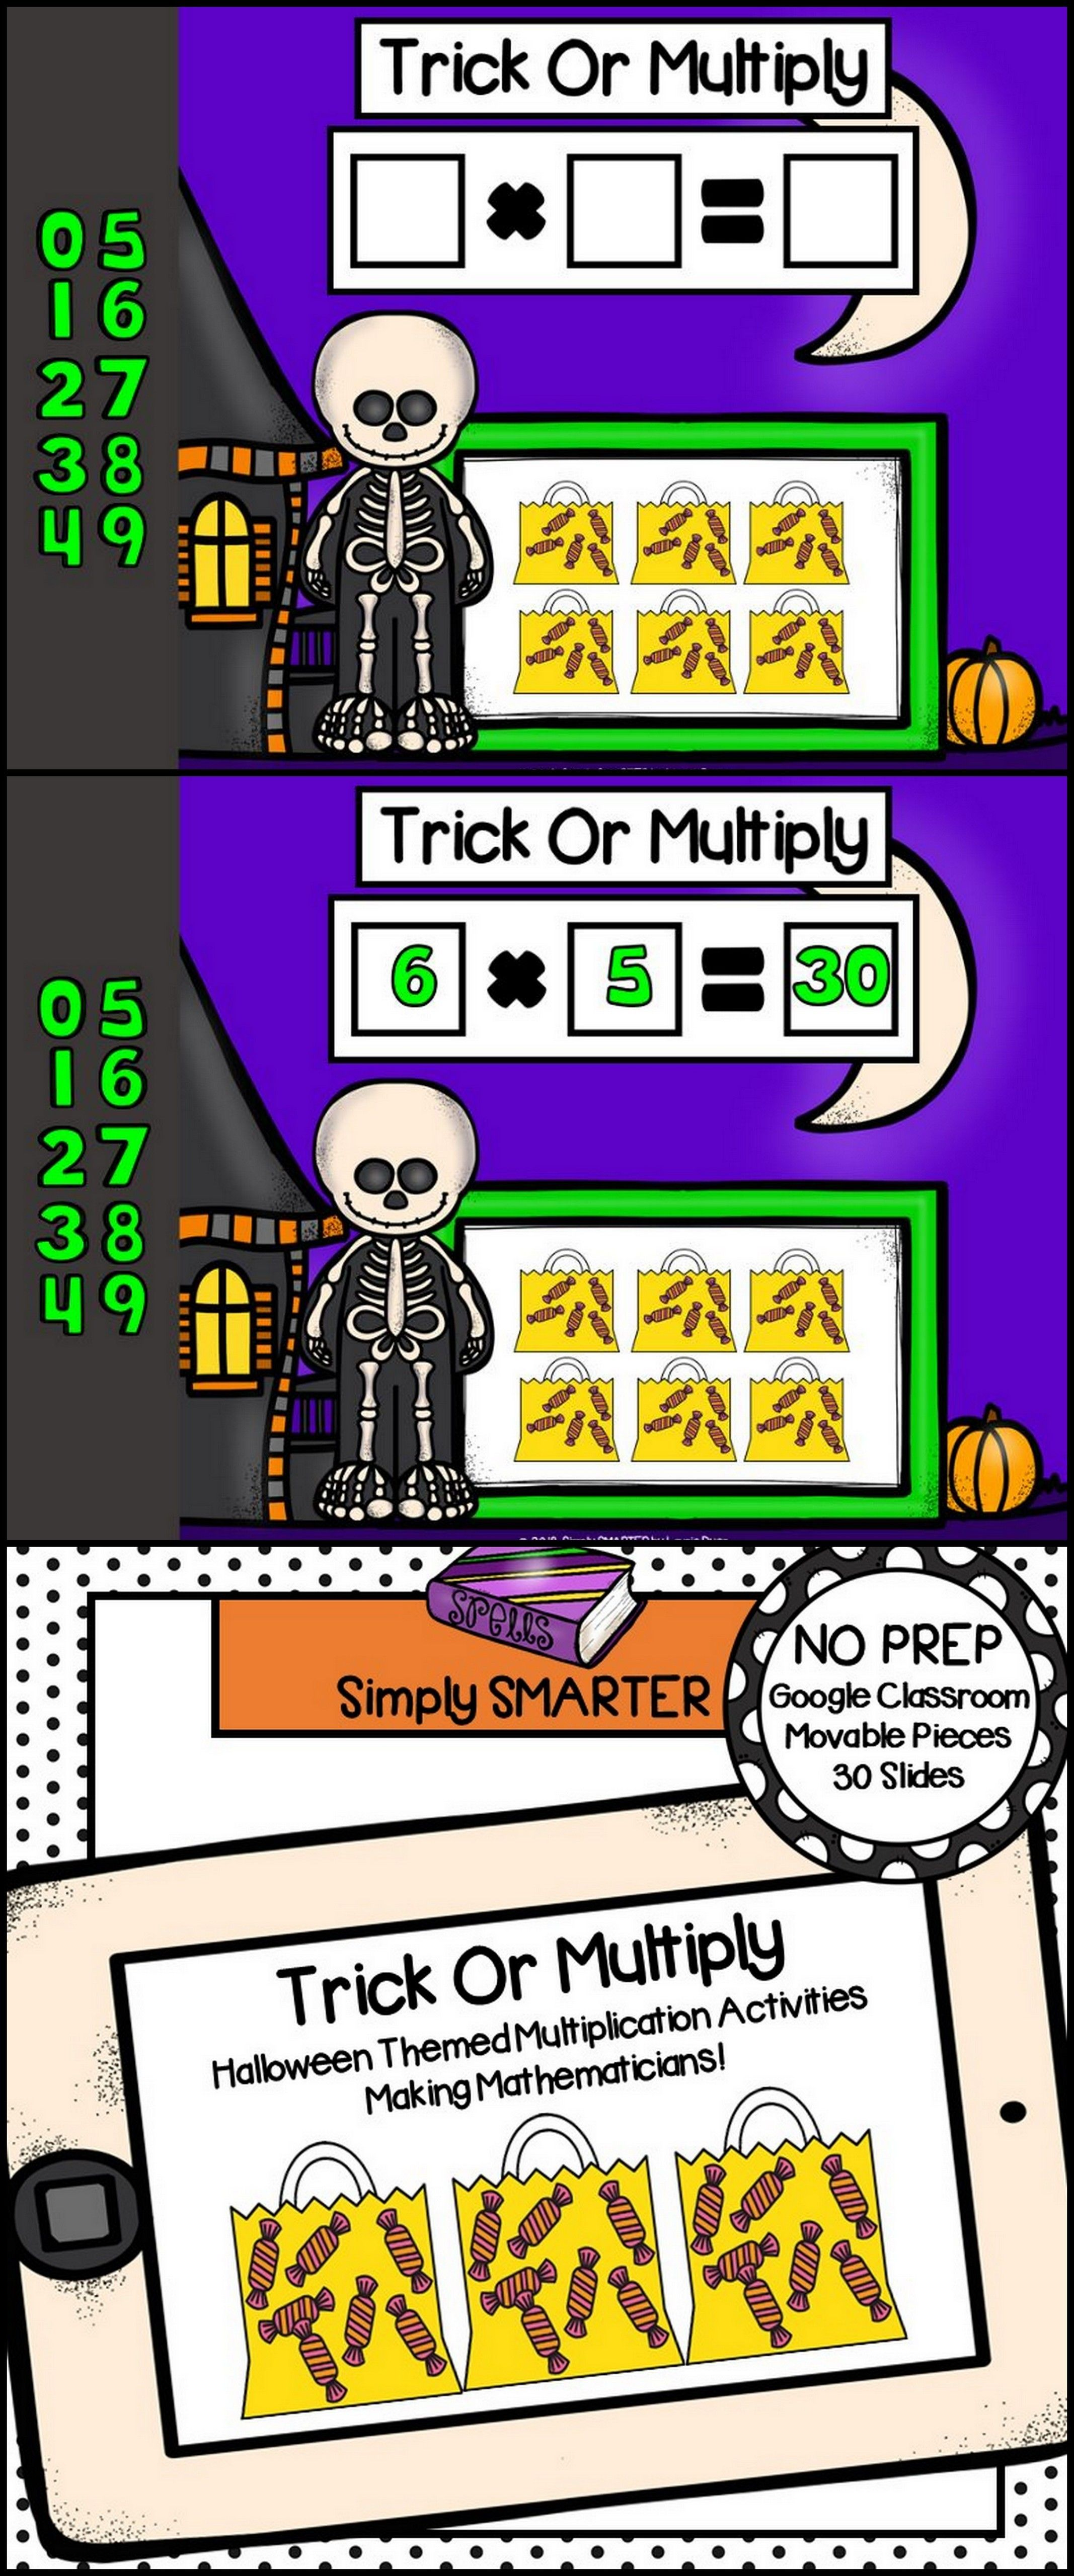 Halloween Themed Multiplication Activities For